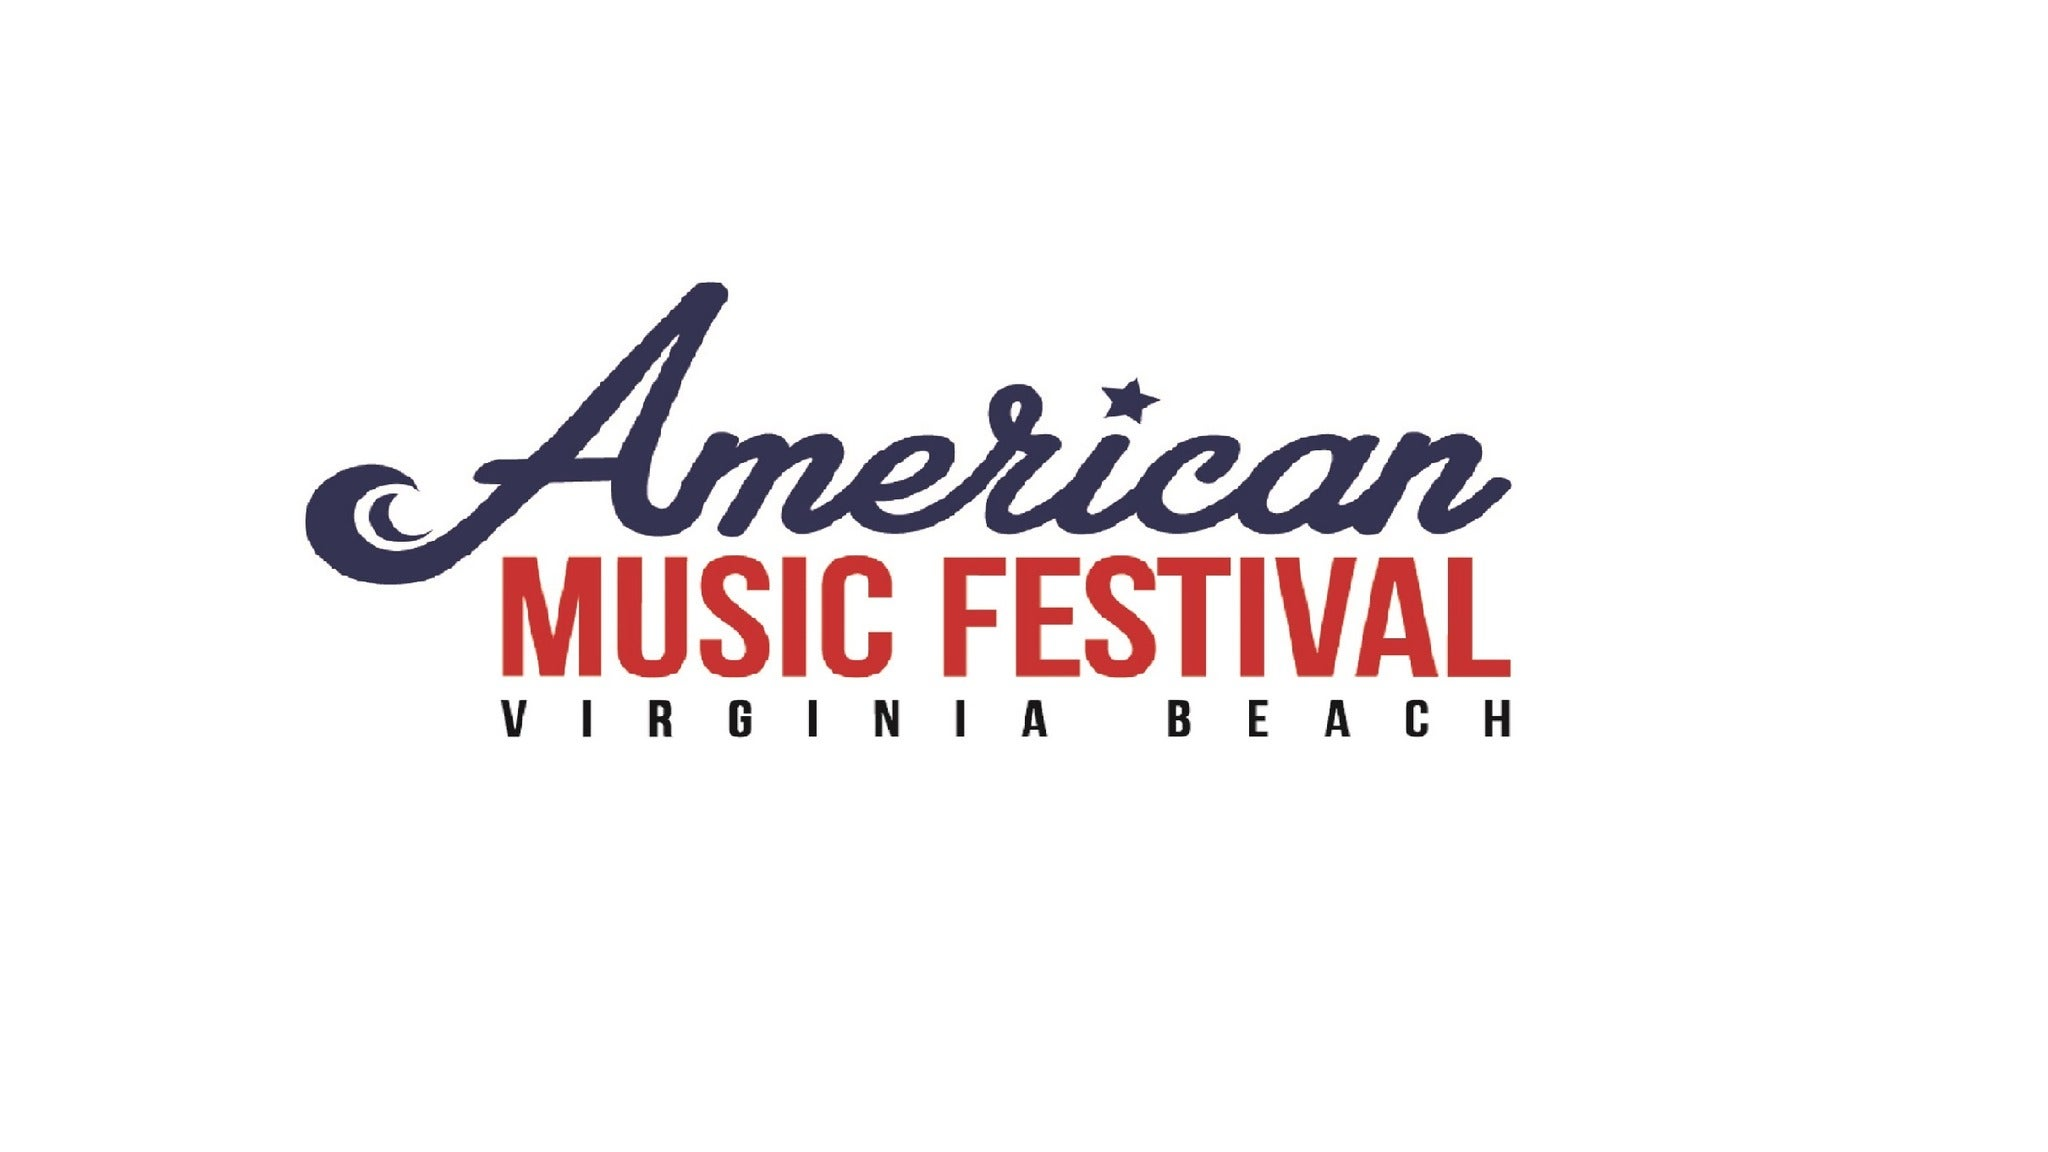 American Music Festival 3 Day Pass at 5th Street Beach